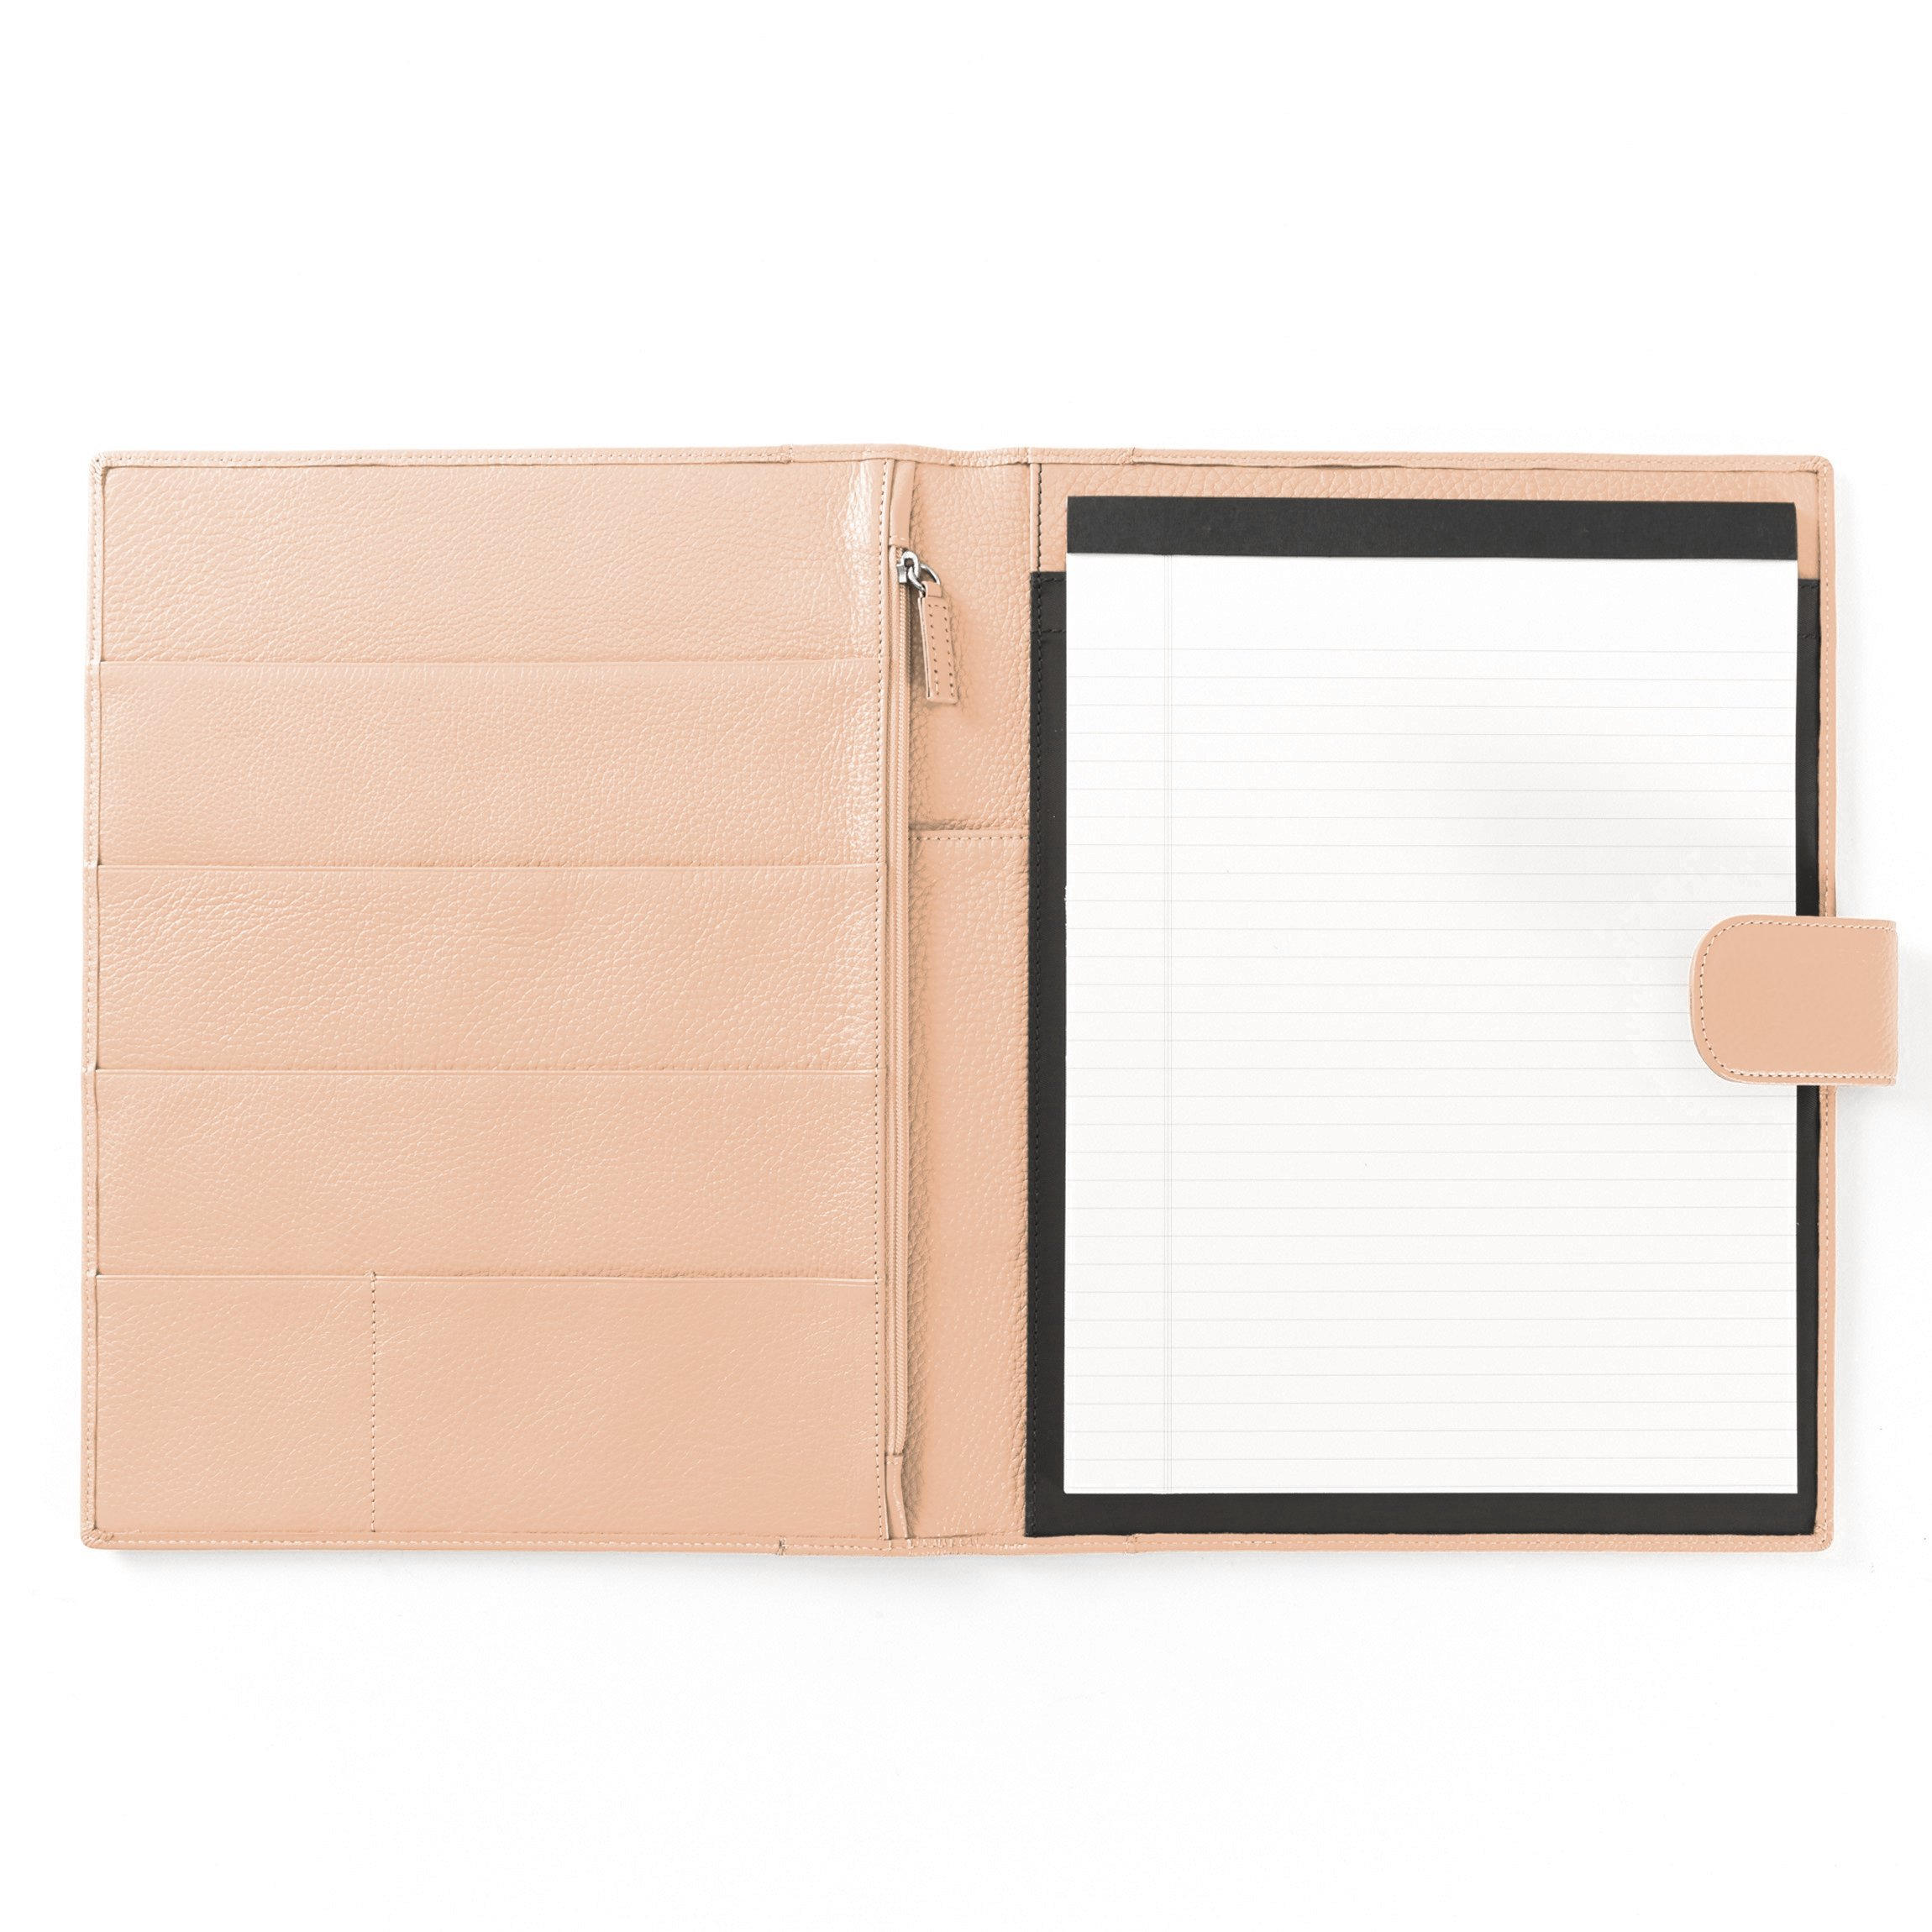 Leatherology Organizer Portfolio with Tablet Pocket & Magnetic Closure - Full Grain Leather Leather - Rose (pink)